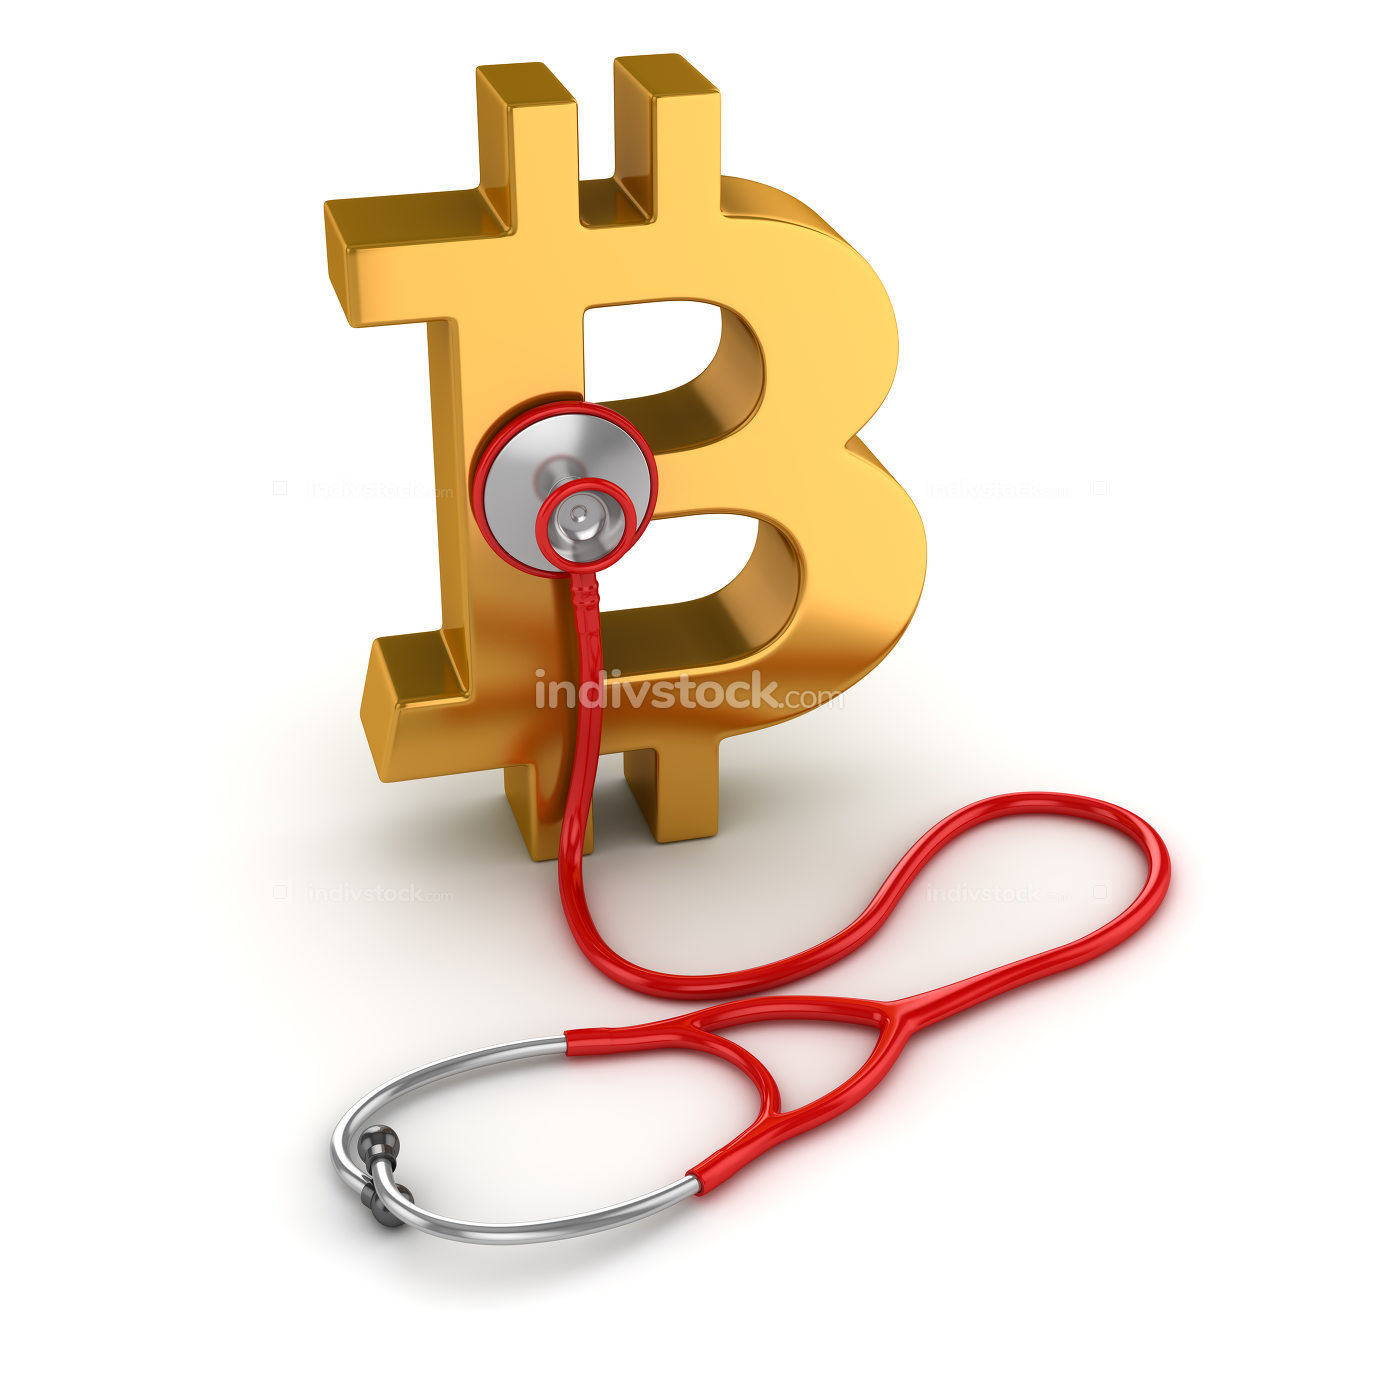 Bitcoin Symbol and Red Stethoscope